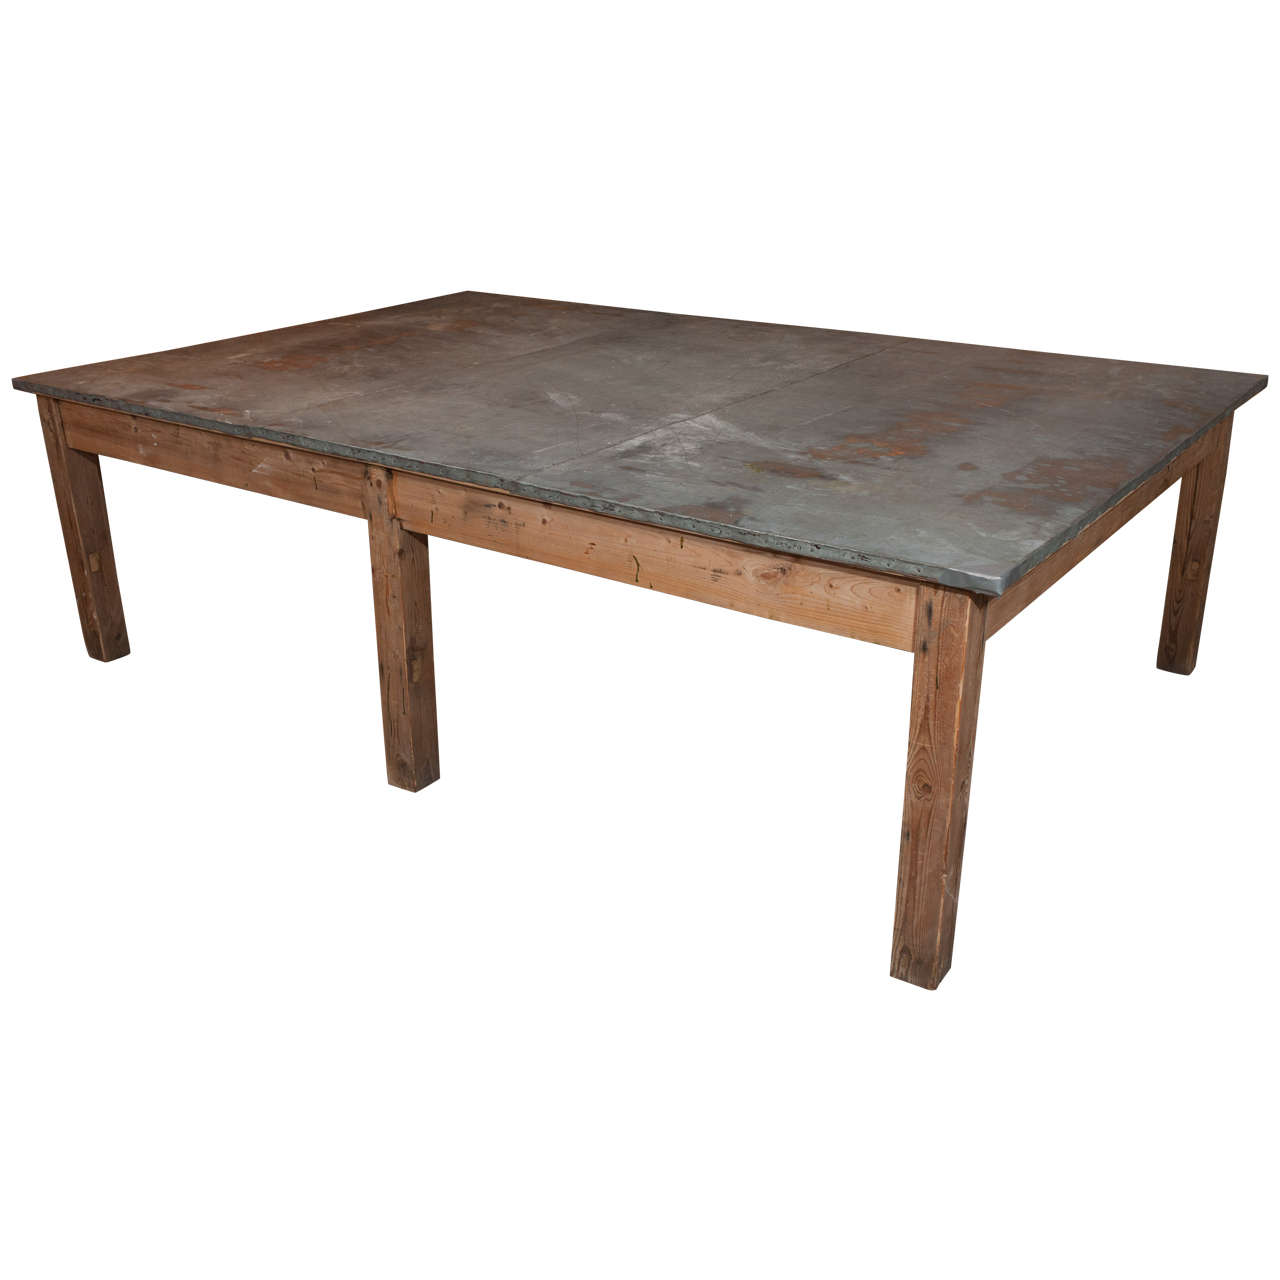 Large Pine And Zinc Table Belgium Circa 1910 At 1stdibs. Full resolution  image, nominally Width 1280 Height 1280 pixels, image with #8C613F.